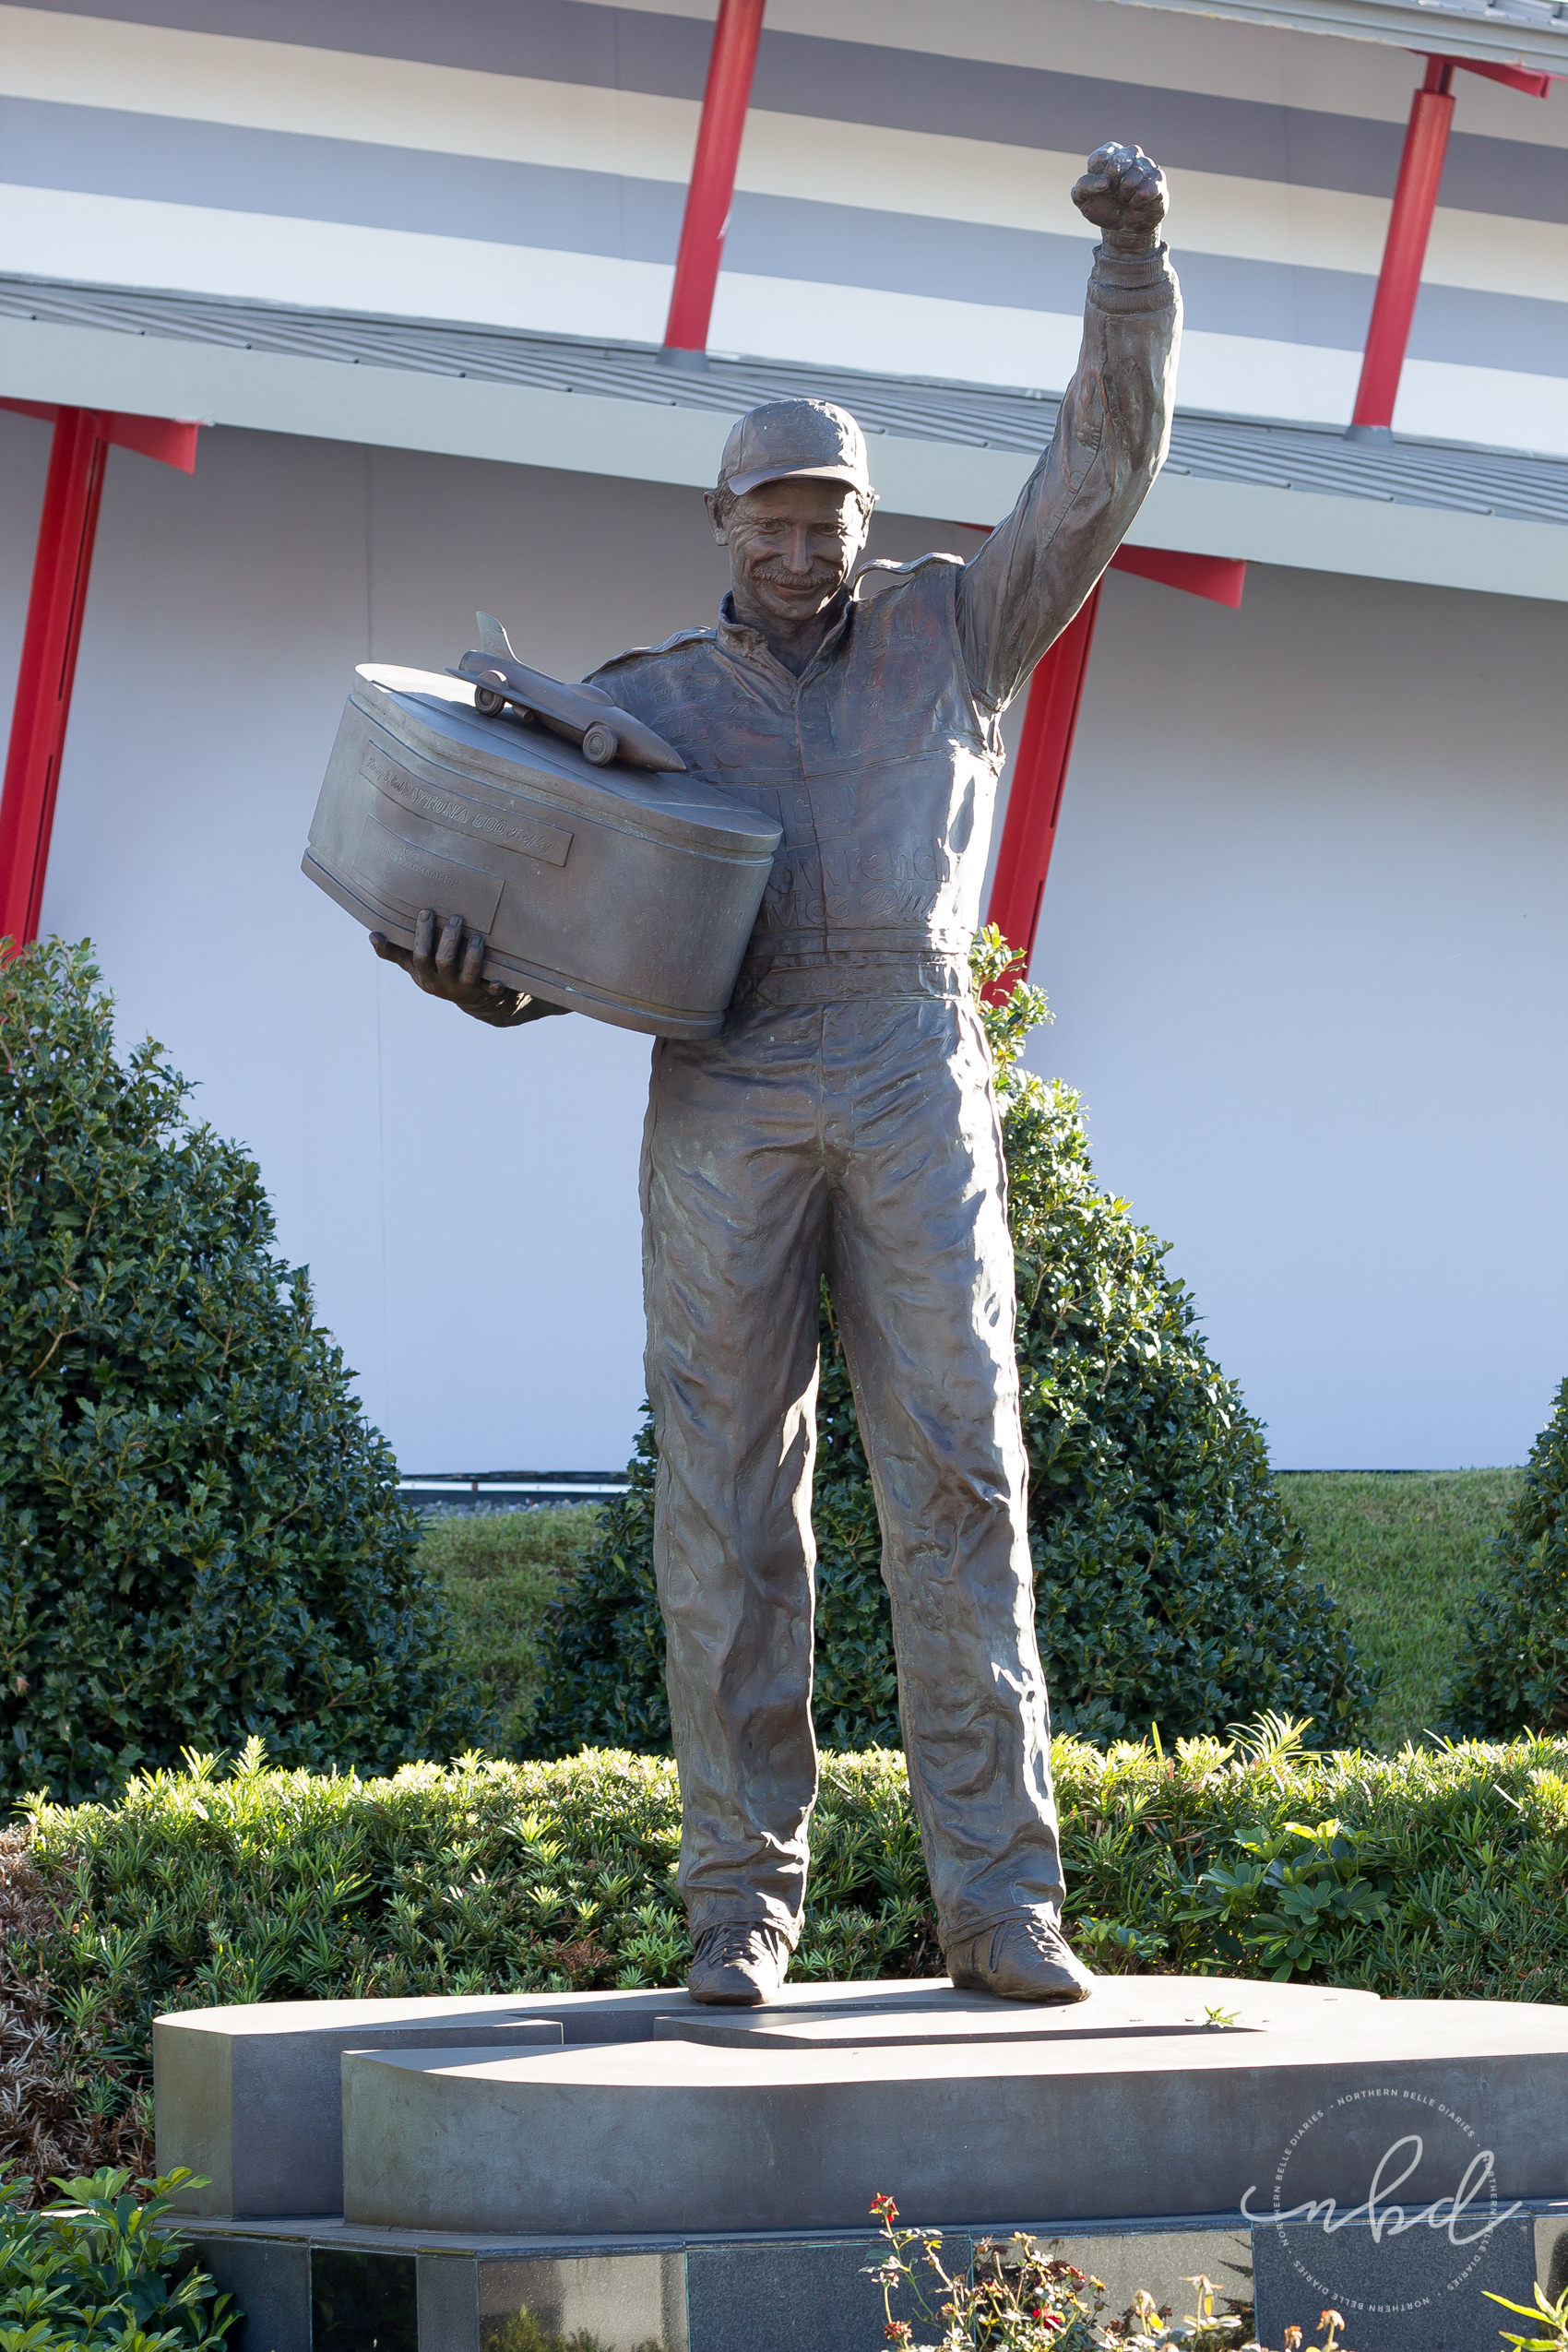 Daytona International Speedway Dale Earnhardt statue - Daytona Beach